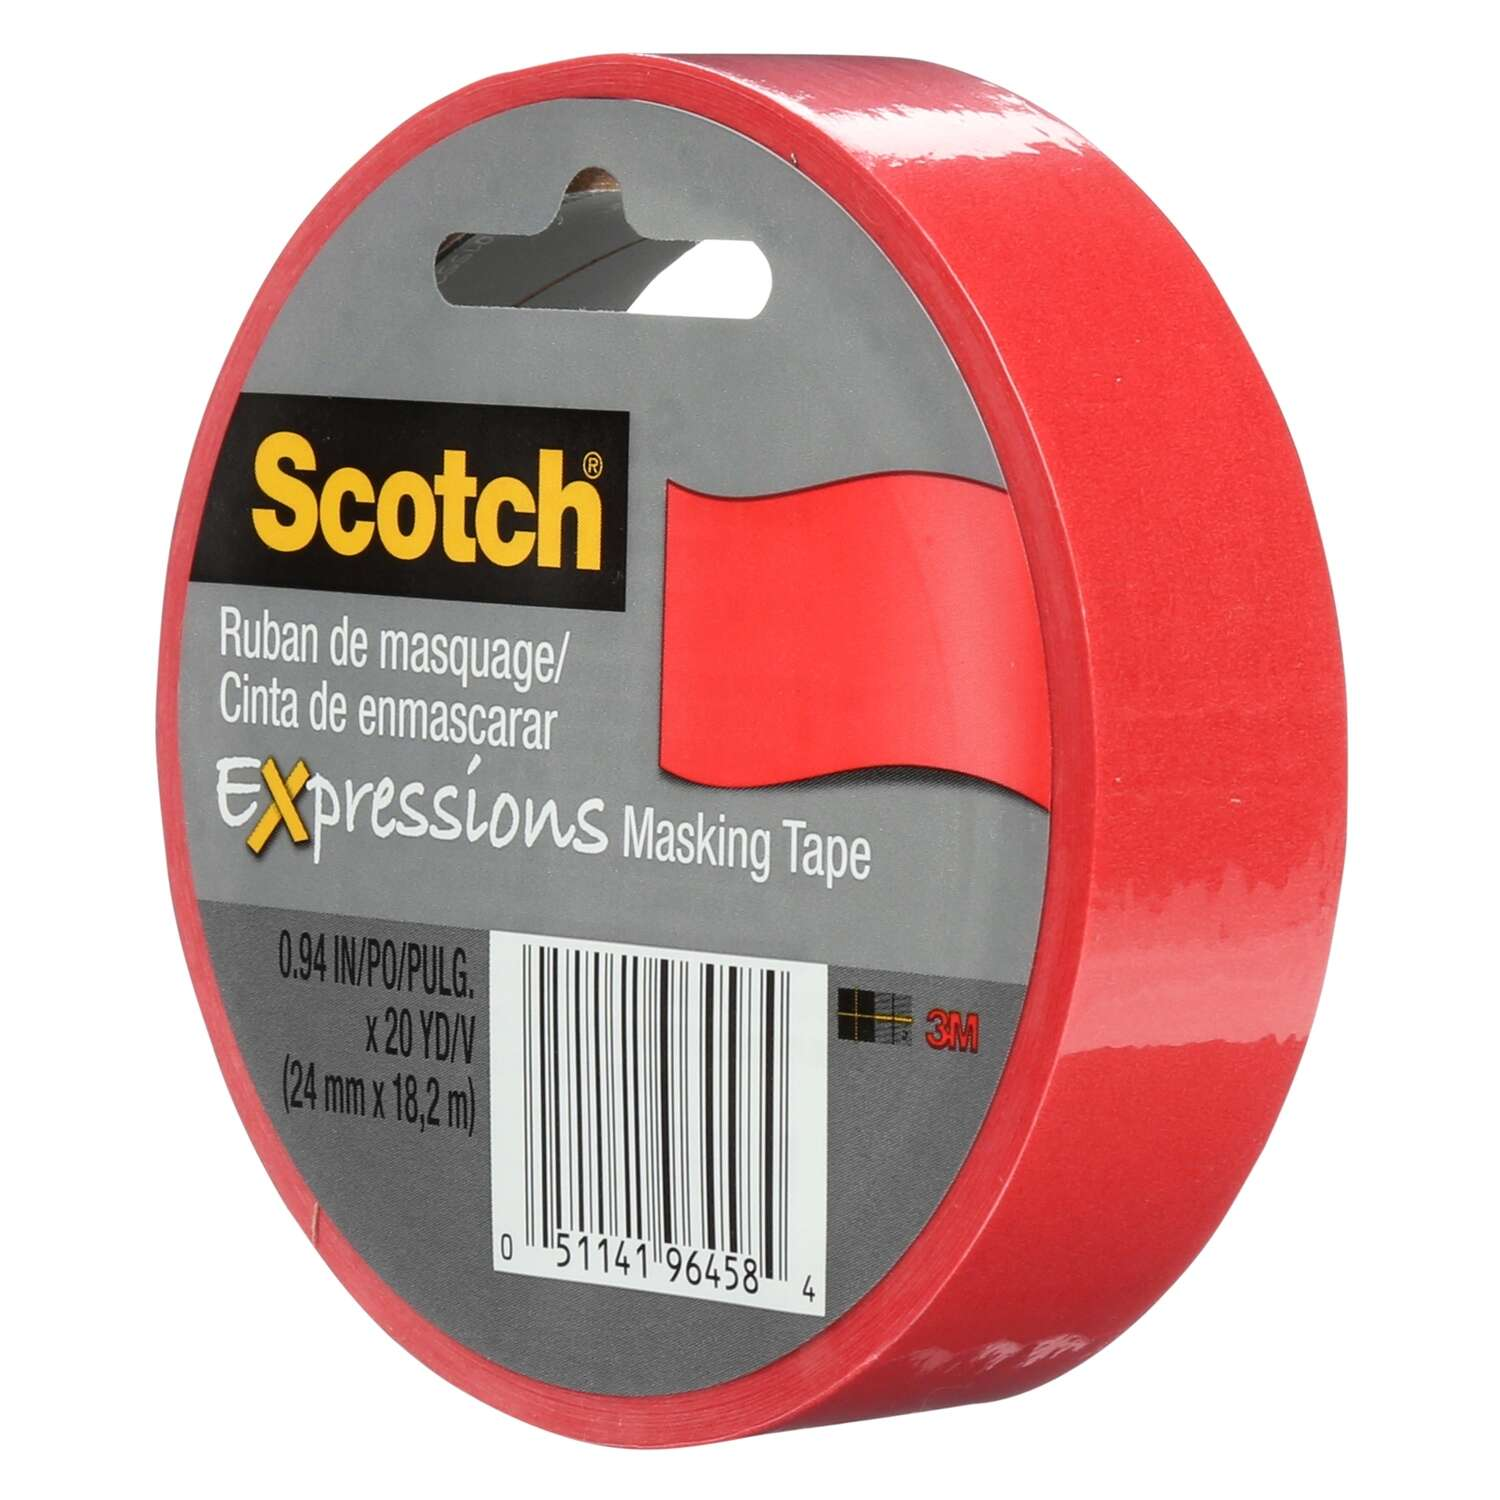 3M Scotch Expression Masking Tapes .94 in. x 20 yd.  Red